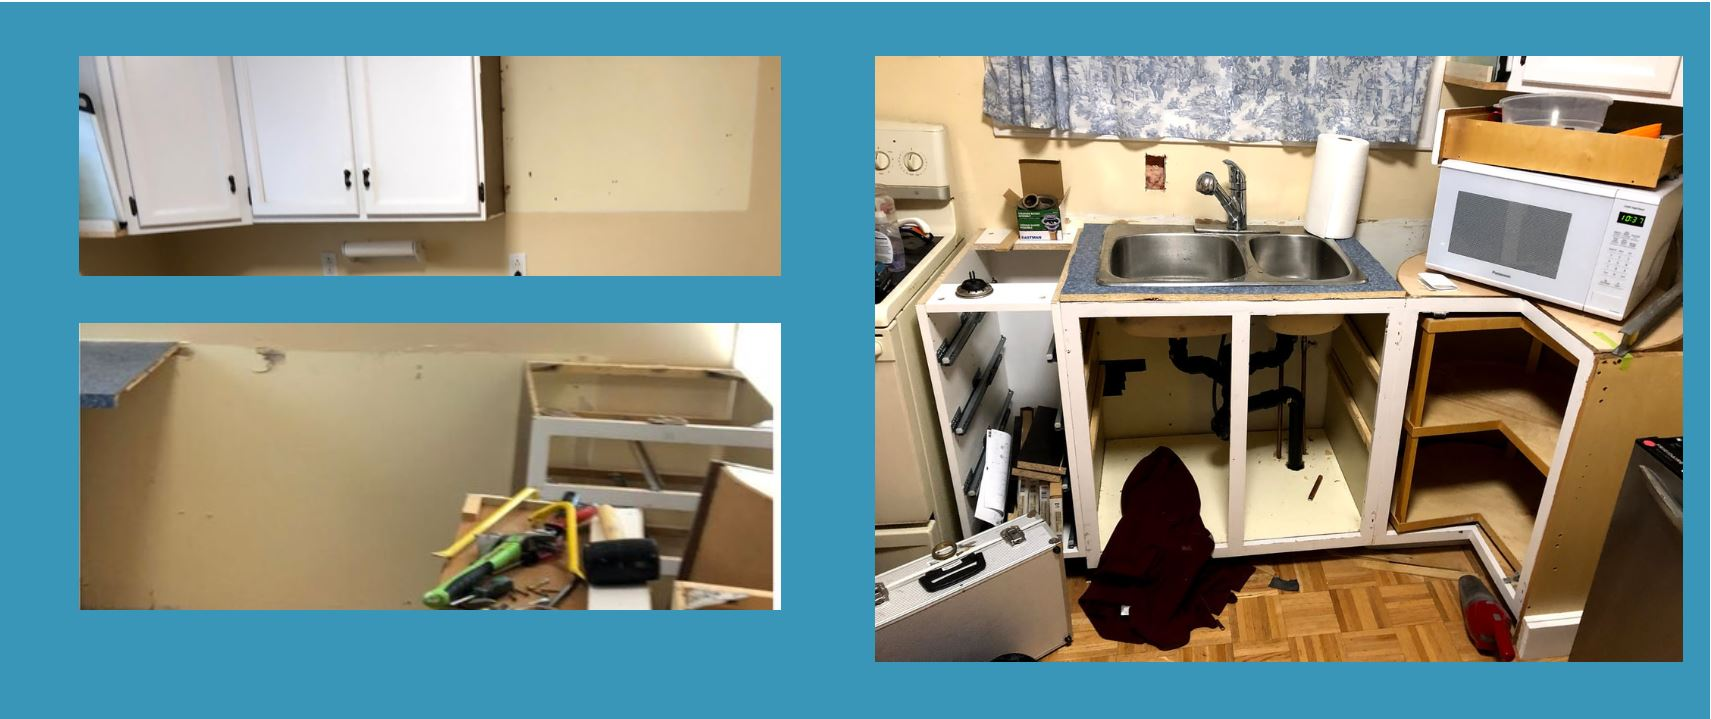 Three pictures on a blue background taken in Cambridge, Ontario, the top and bottom left show an expanse of wall where kitchen cabinets have been removed and the wall is differently coloured, the one on the right shows a kitchen sink with cabinets and drawers without doors and tools on the floor